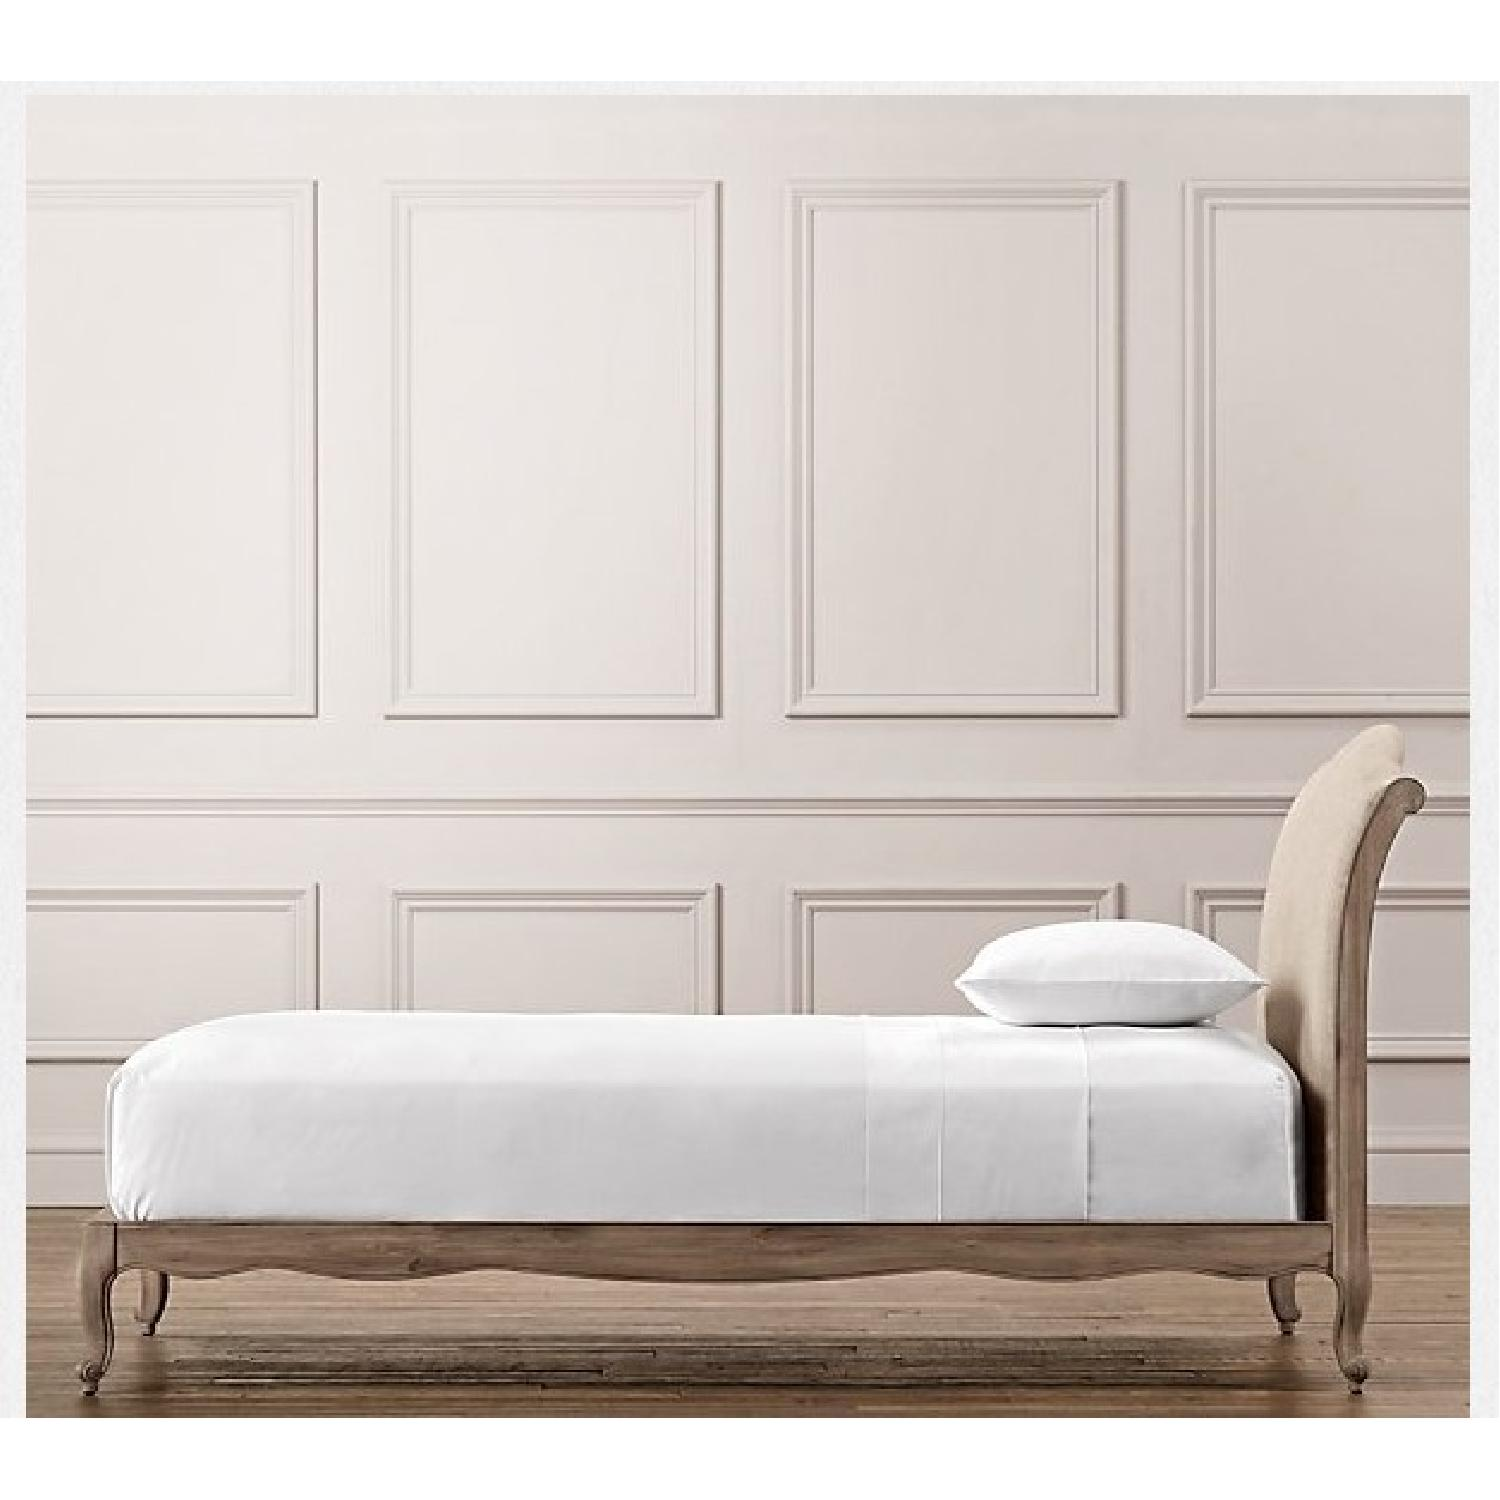 Restoration Hardware Lea Upholstered Twin Size Platform Beds - Pair - image-2